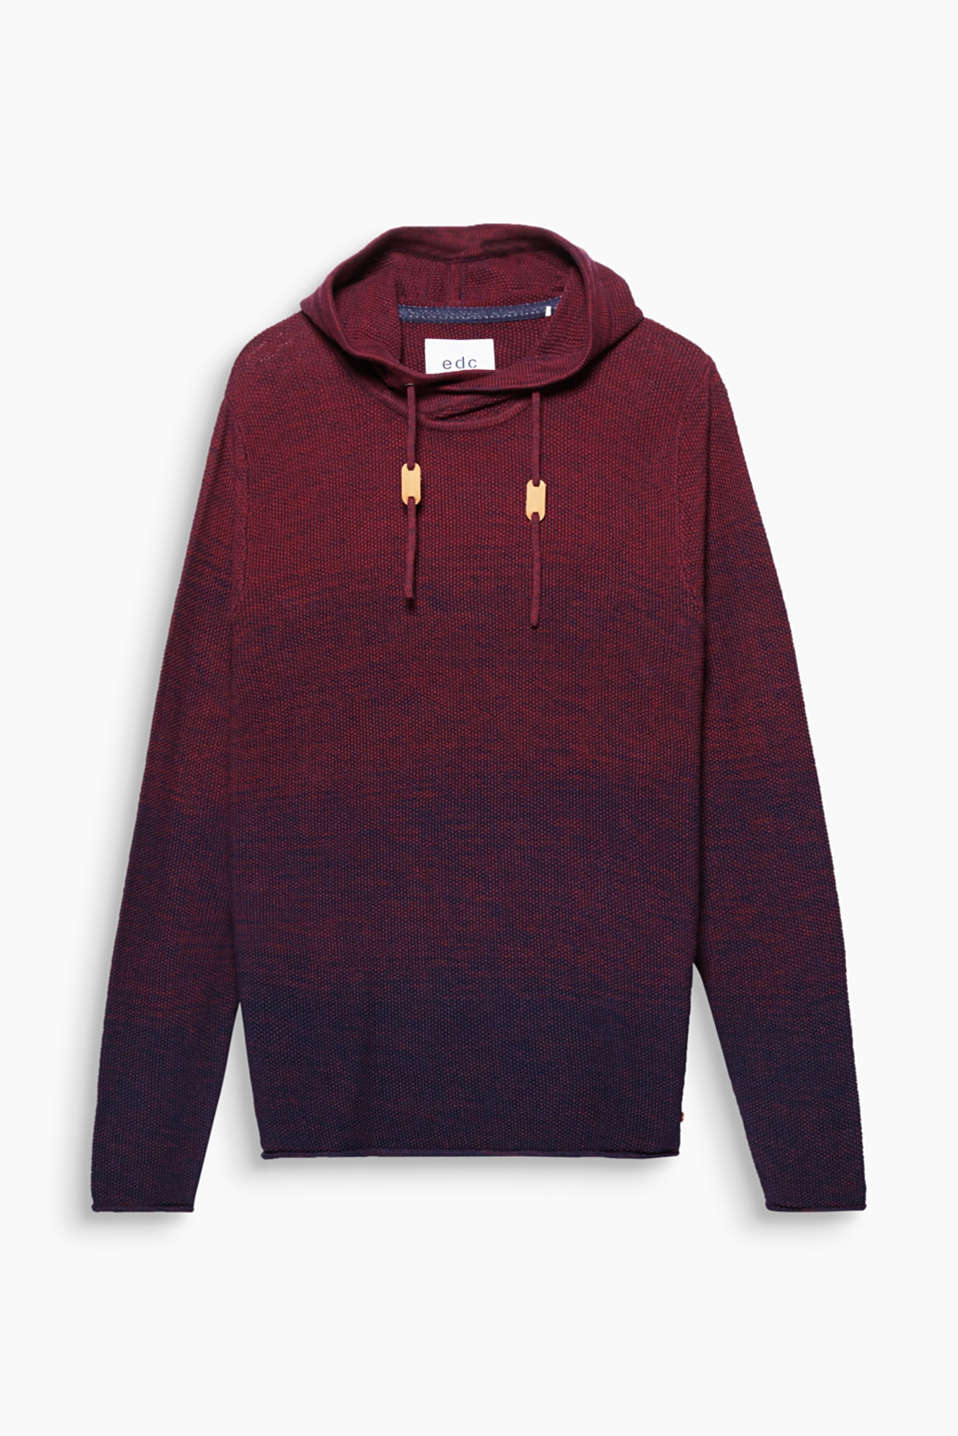 Your fashion essential: The textured knit and colour graduation make this hoodie a style favourite!